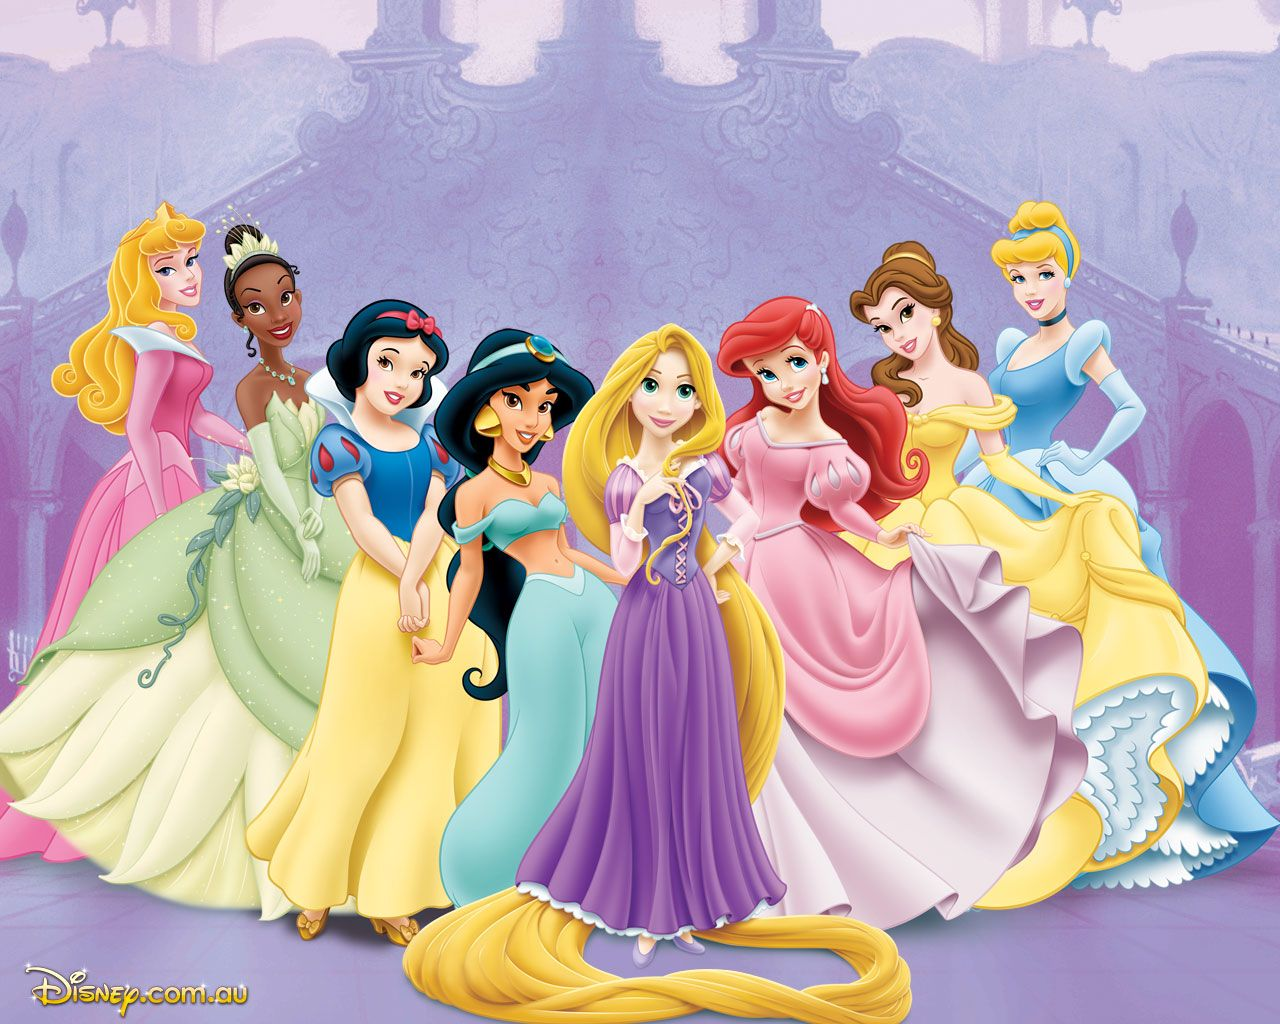 Disney com princess castle backgrounds disney princesses html code - Disney Princess Fan Art Disney Princess In Pink Gown